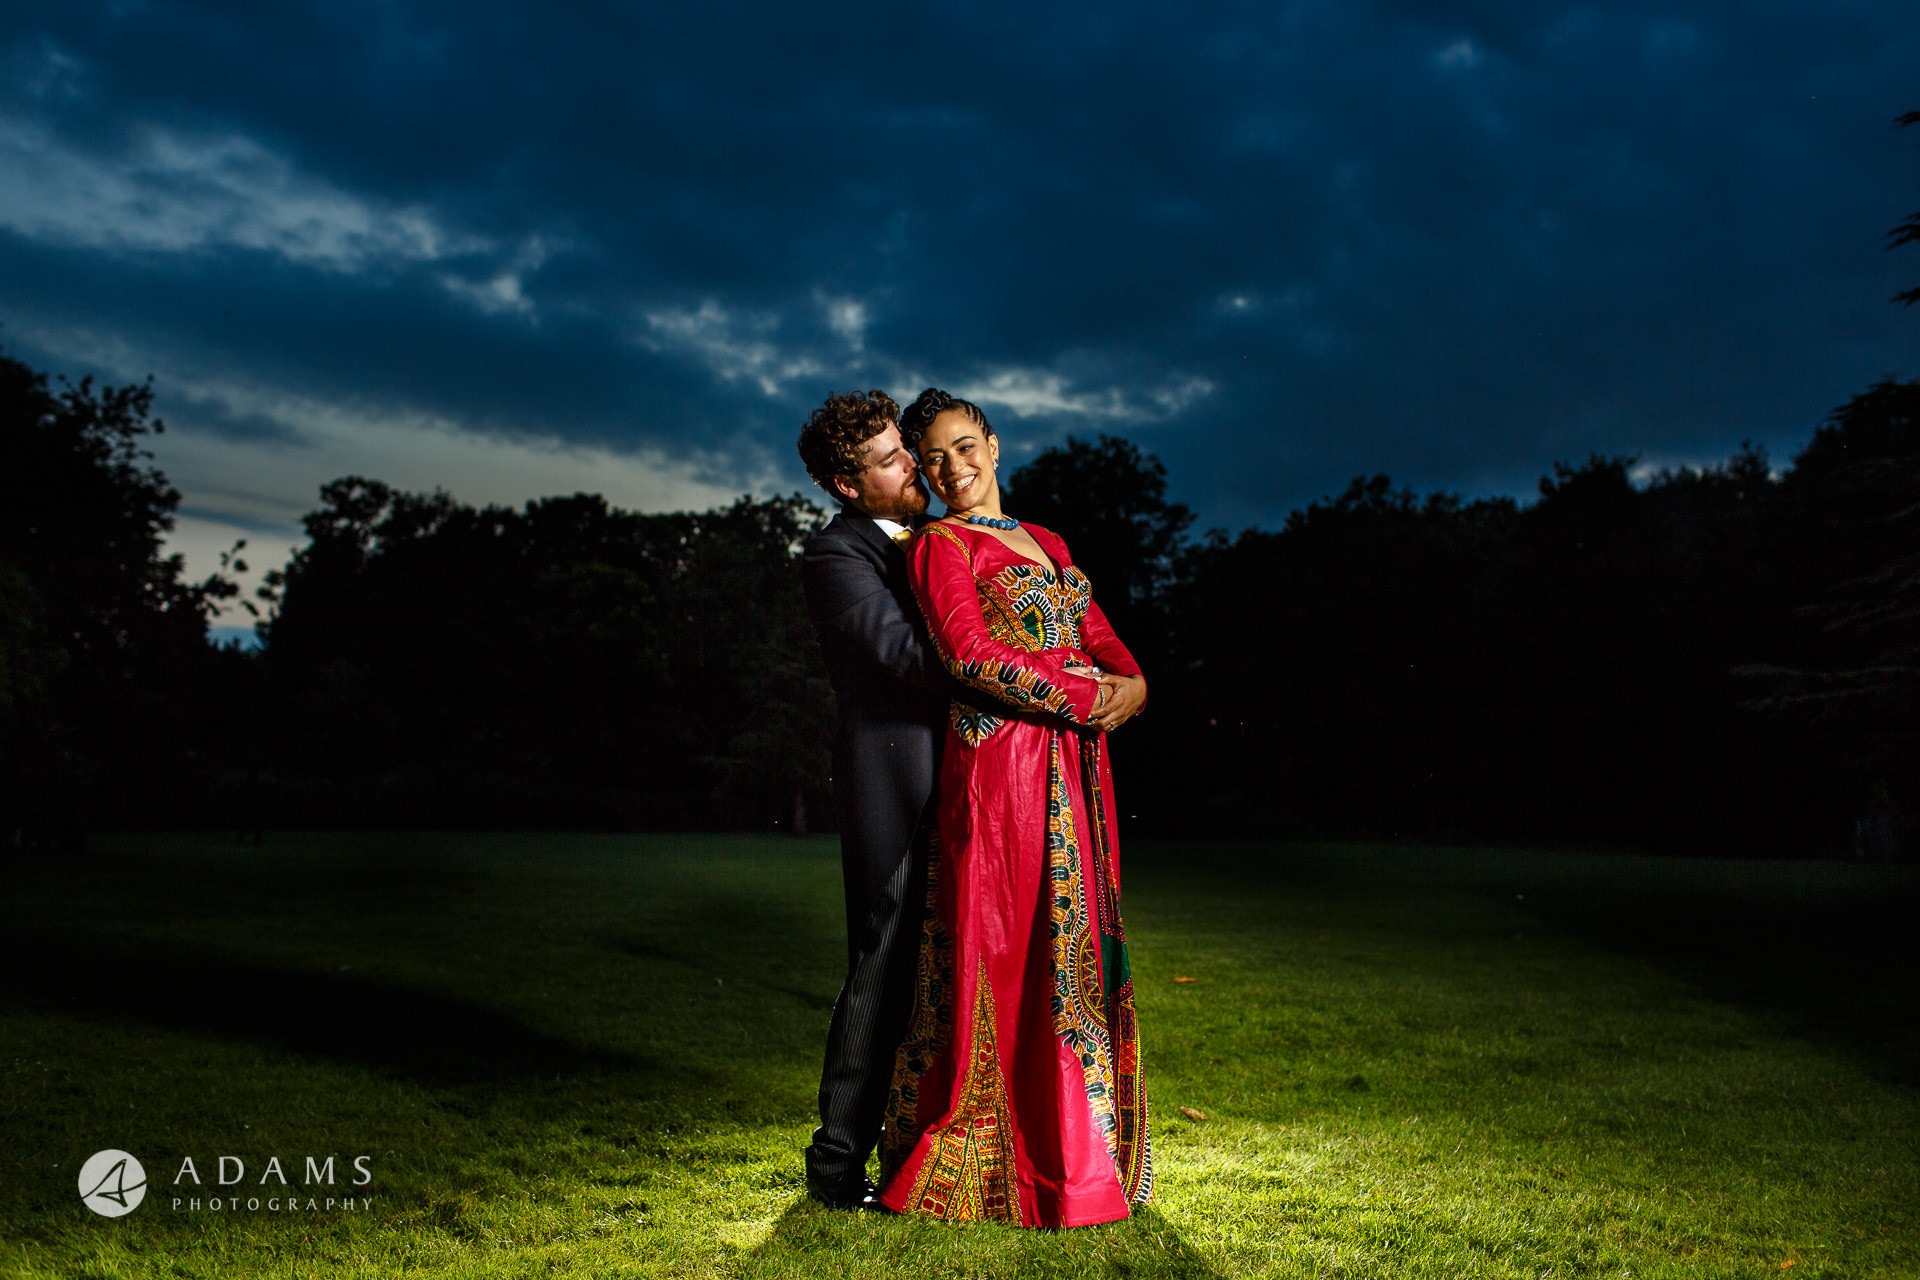 Morden HallWedding beautiful portrait of a bride and groom in the evening light at Morden Hall wedding by a photographer from Lonond